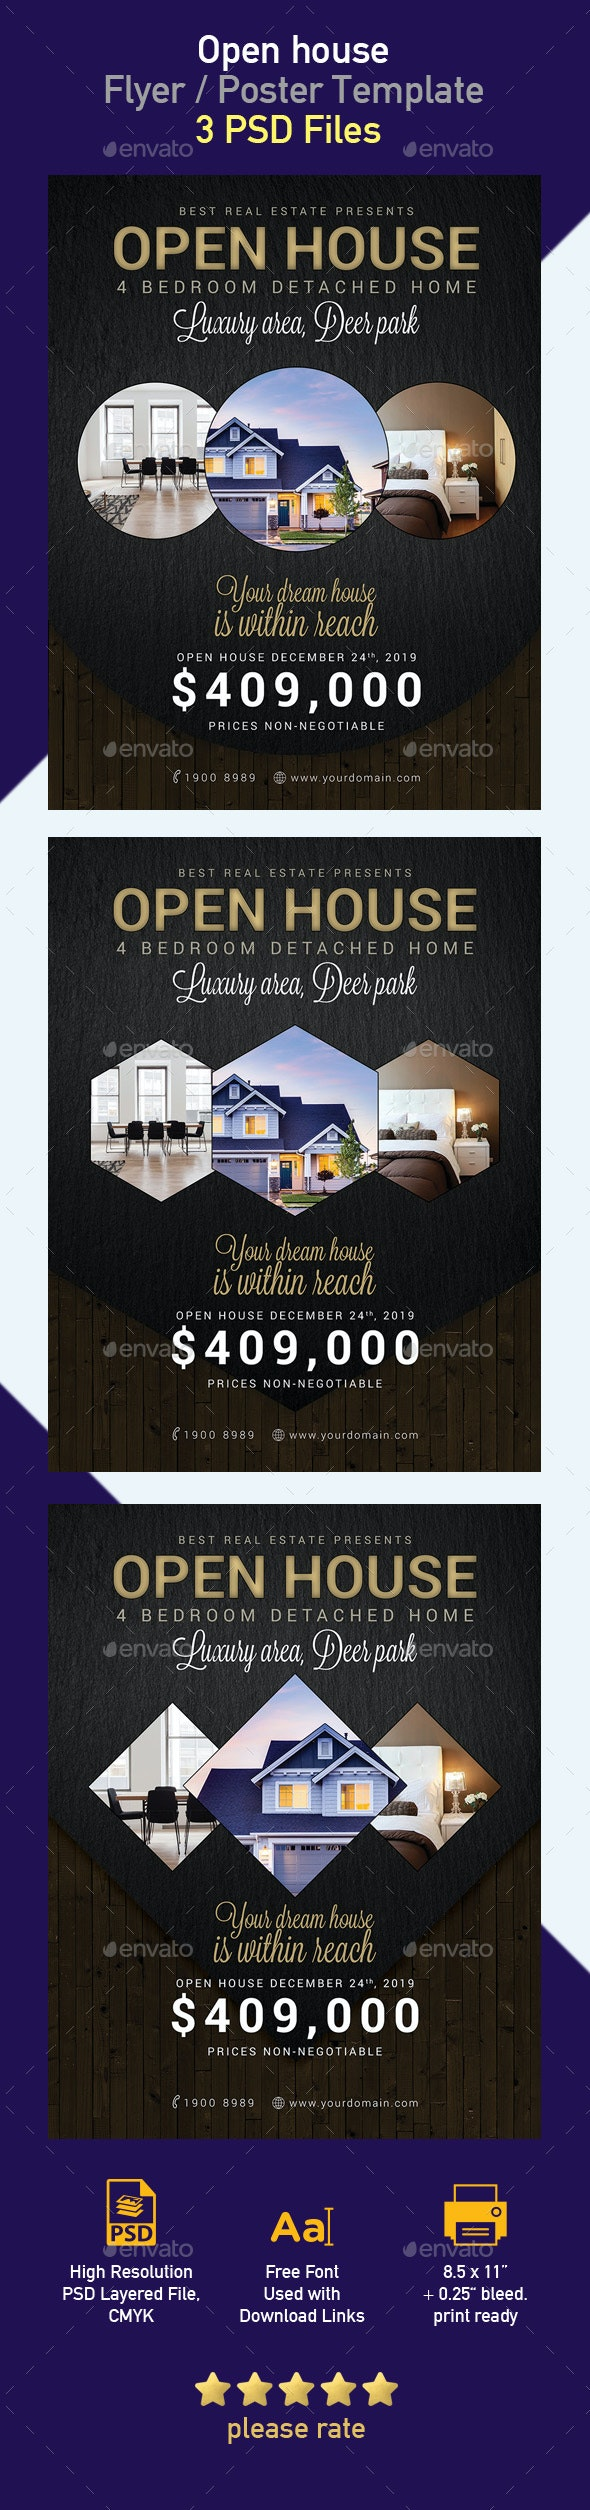 Real Estate Open House Flyer - Flyers Print Templates